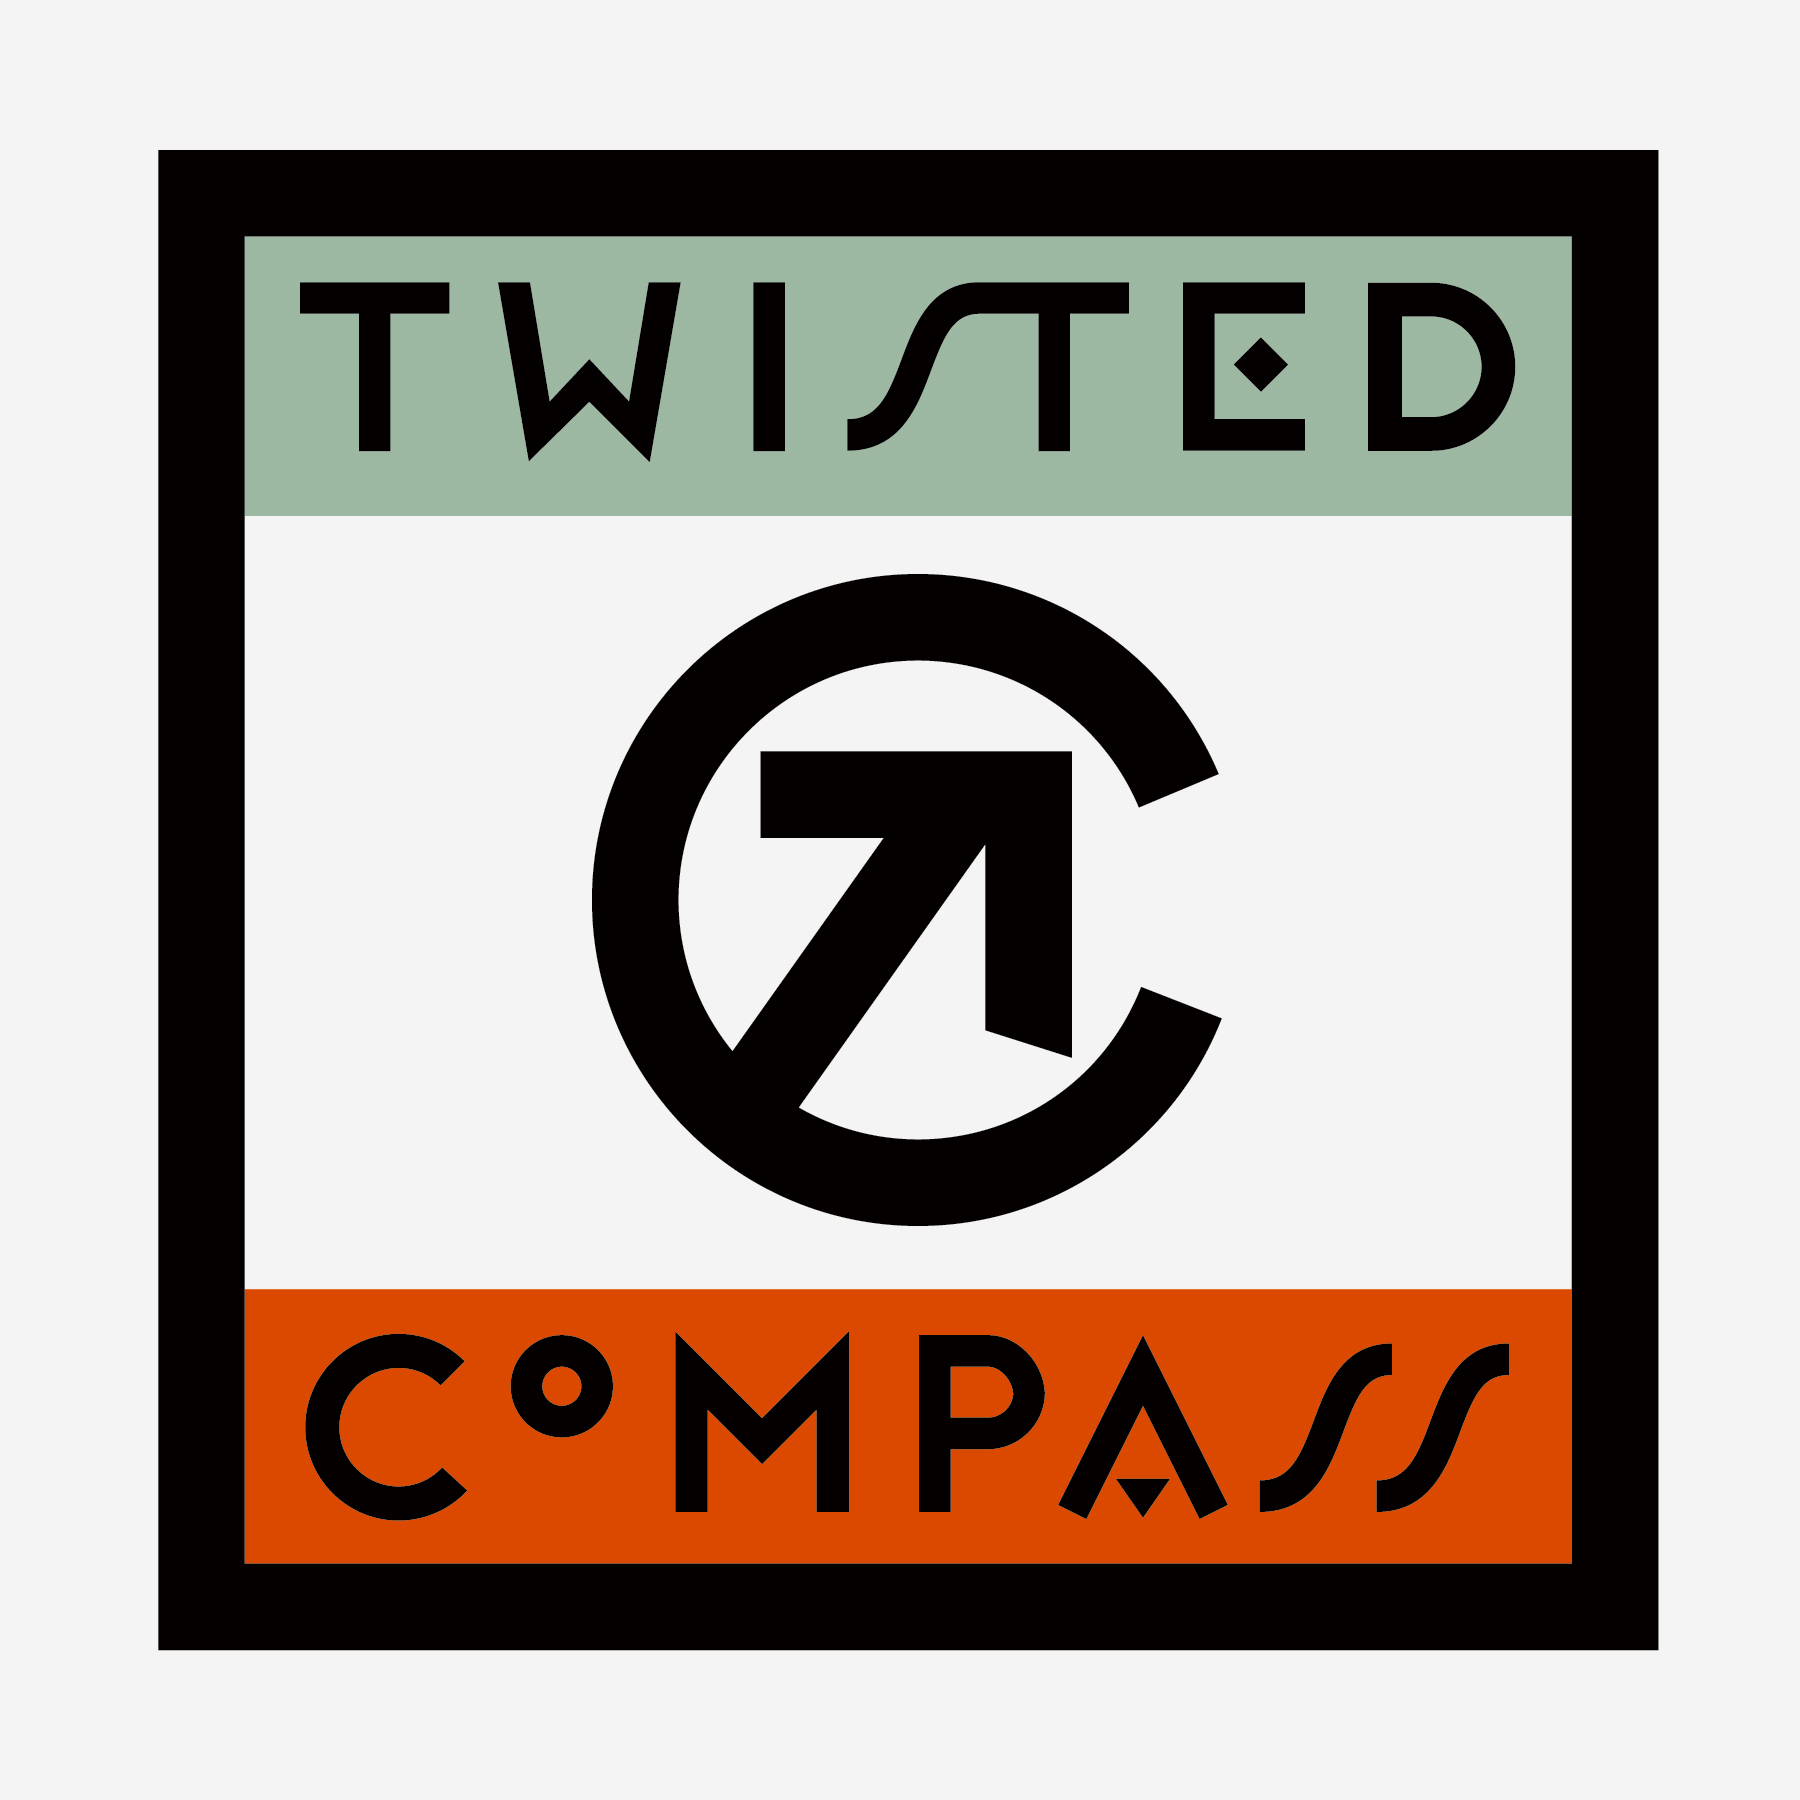 Twisted Compass Brewing Co.